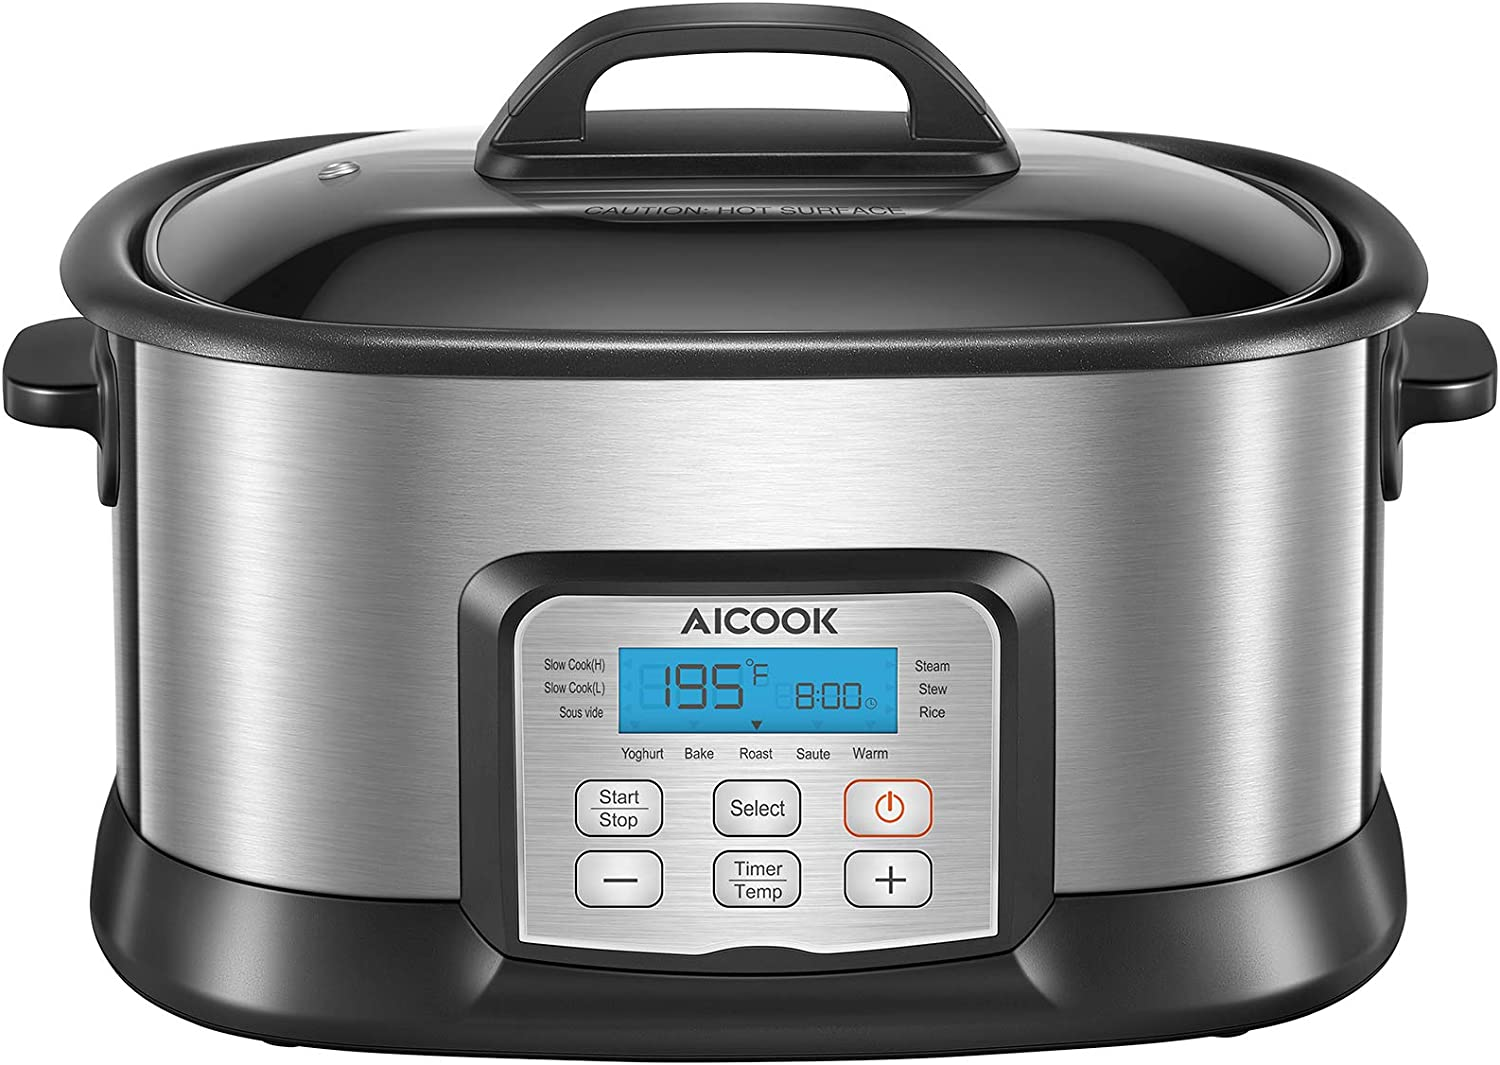 Slow Cooker 6 Quart, AICOOK Programmable Multi-Cooker 10-in-1 Multi-Use Steamer Food Warmer Yogurt Maker with Stainless Steel Pot, Glass Lid, Steam Rack and Digital Timer for Kitchen, 1500W